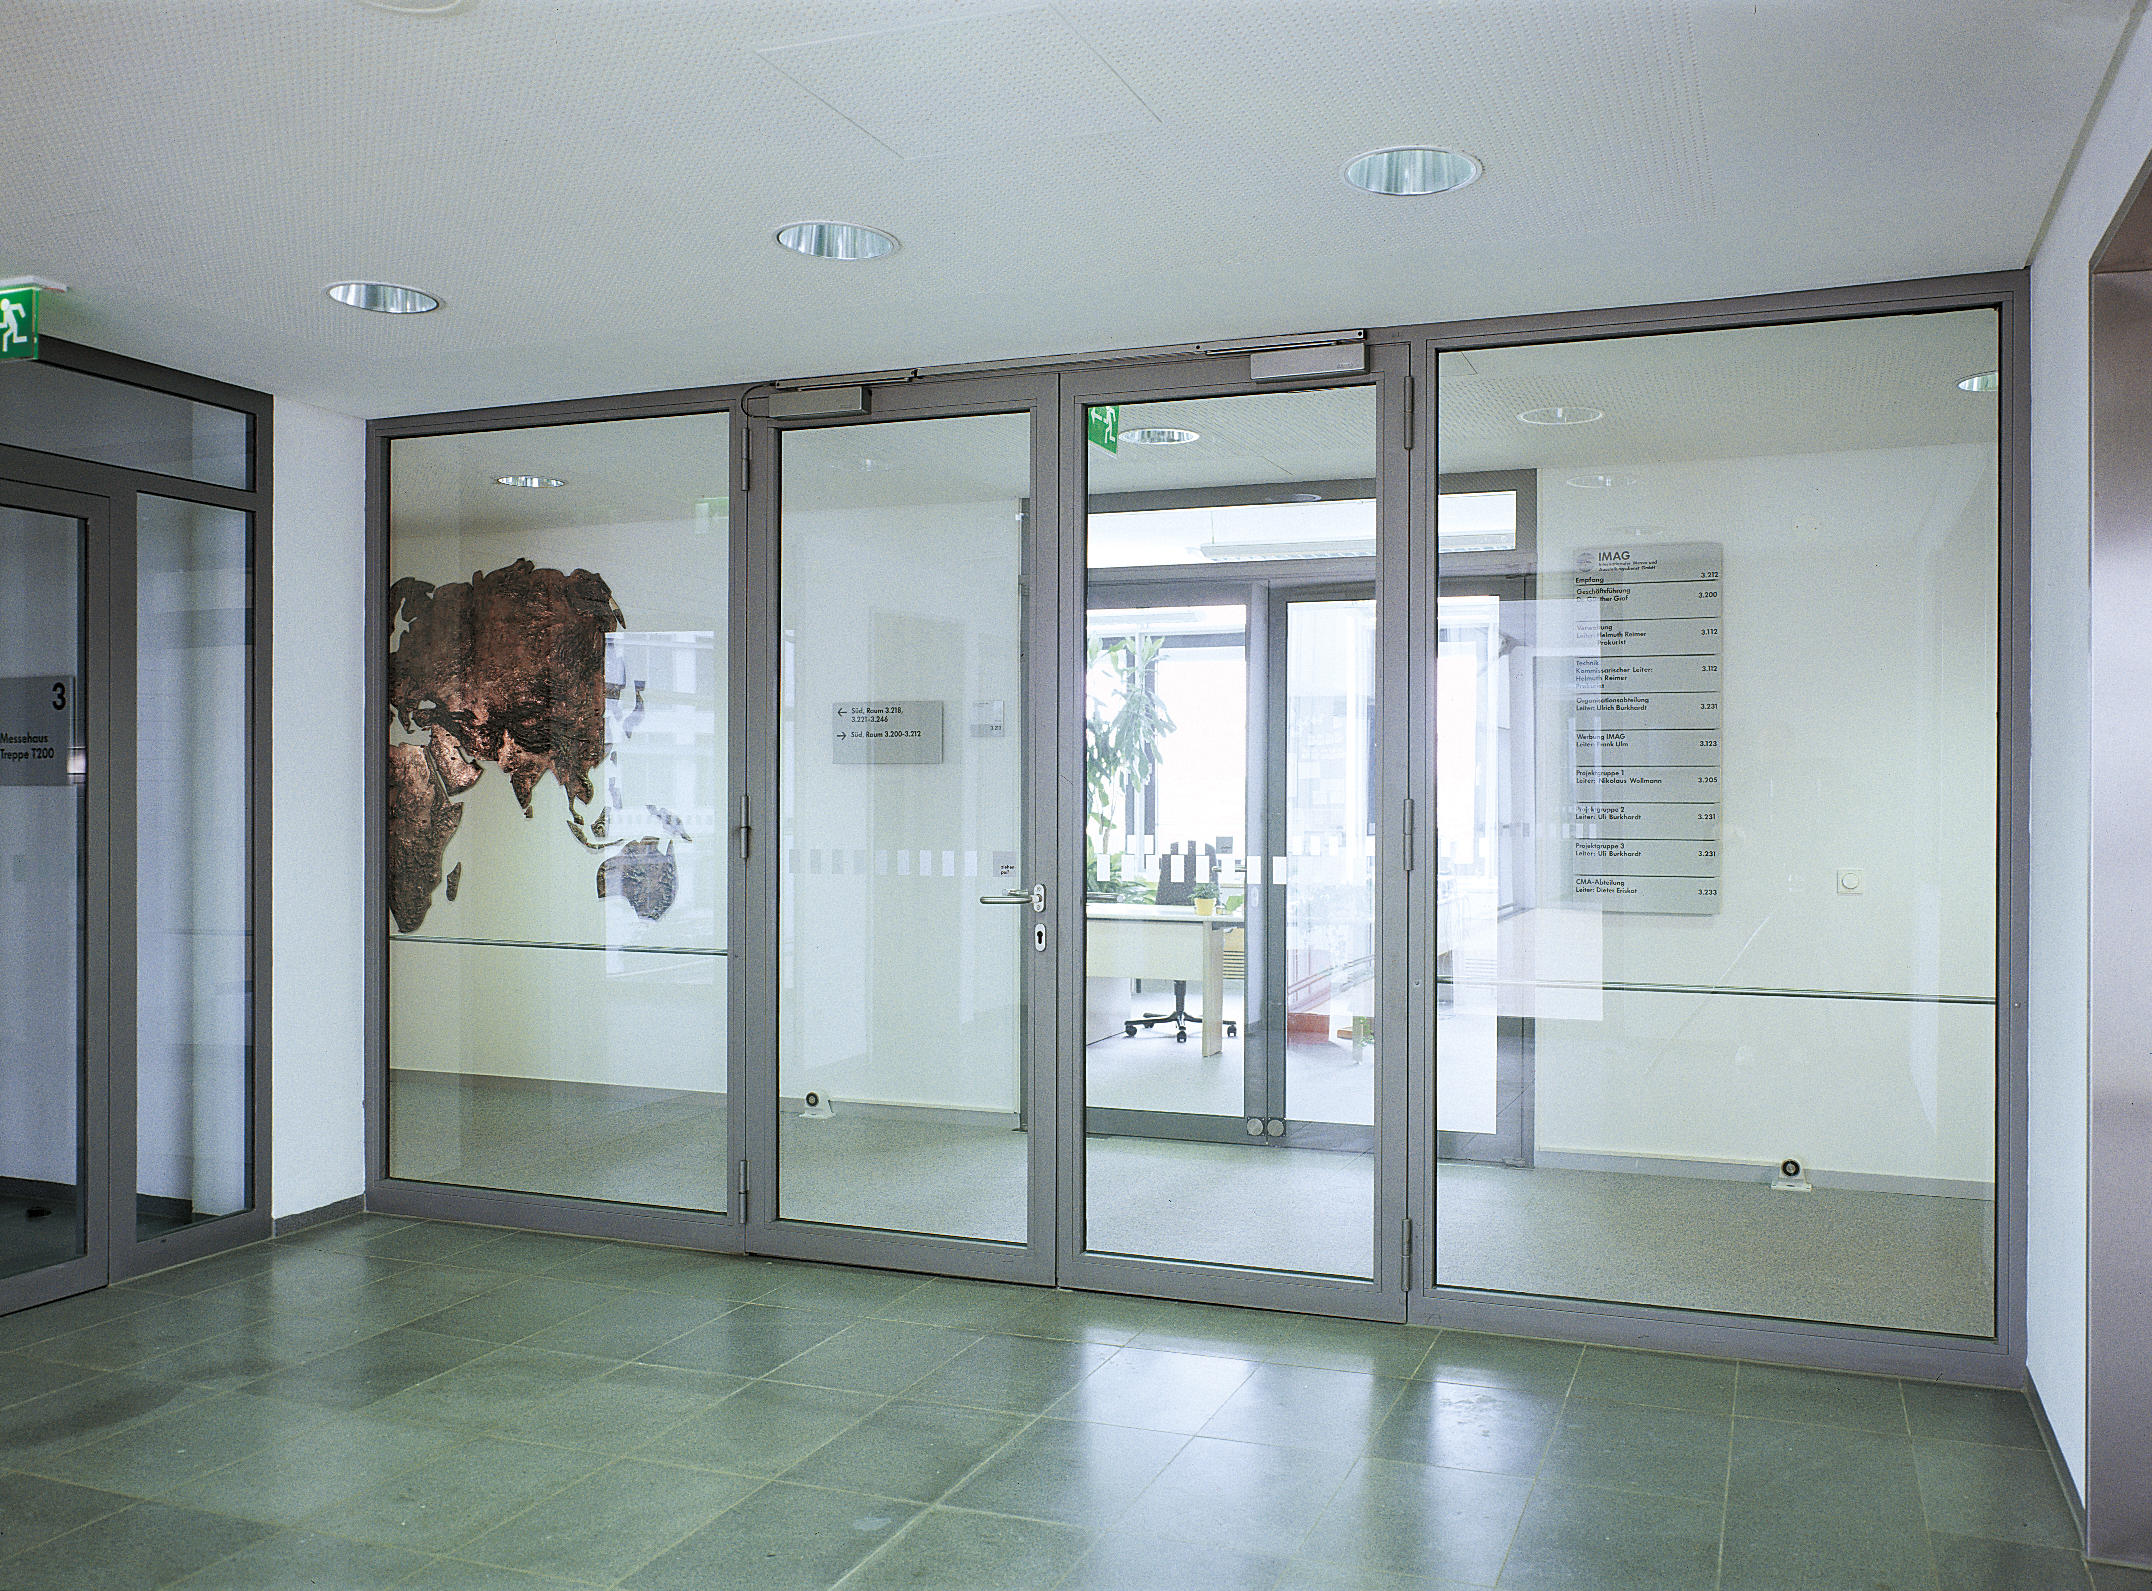 Janisol 2 Ei30 Fire Protection Door Steel And Stainless